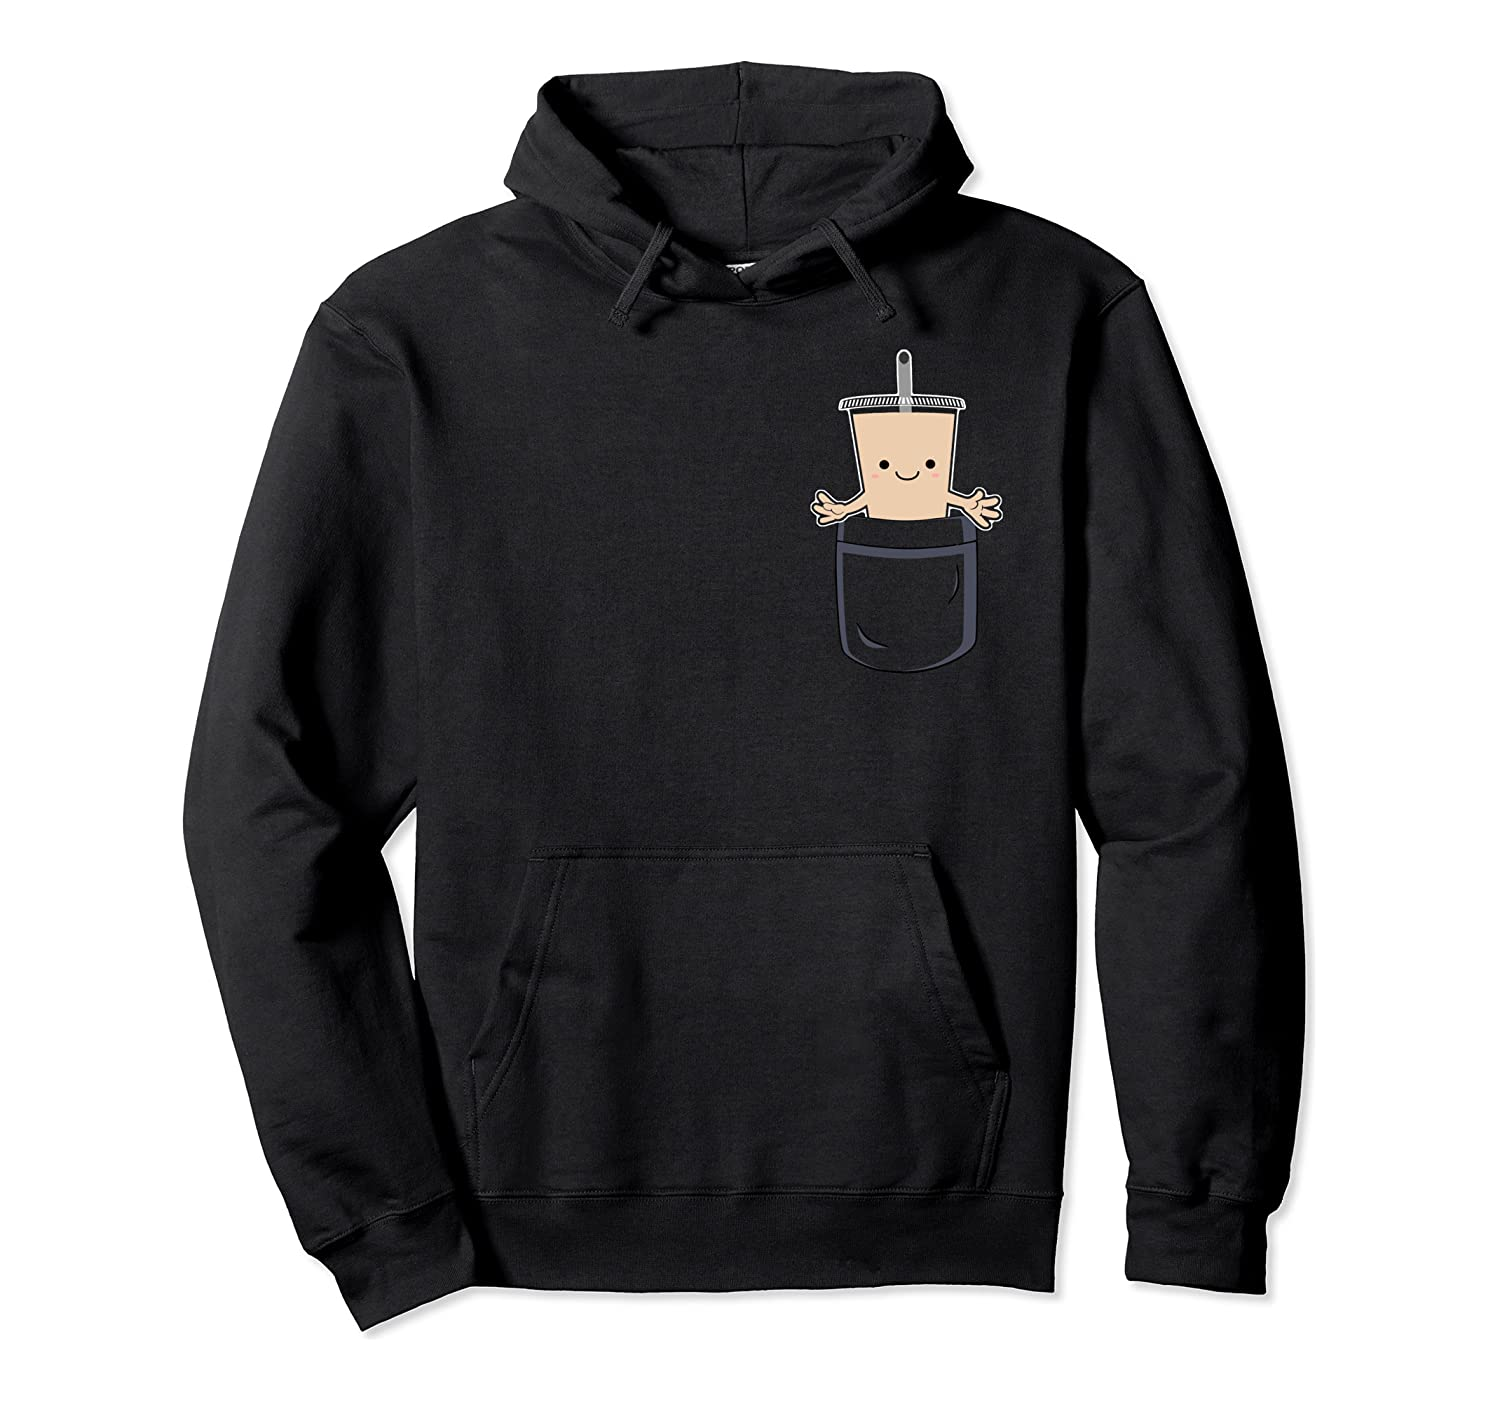 Cute Boba In Pocket Bubble Milk Tea Pouch Pullover Hoodie